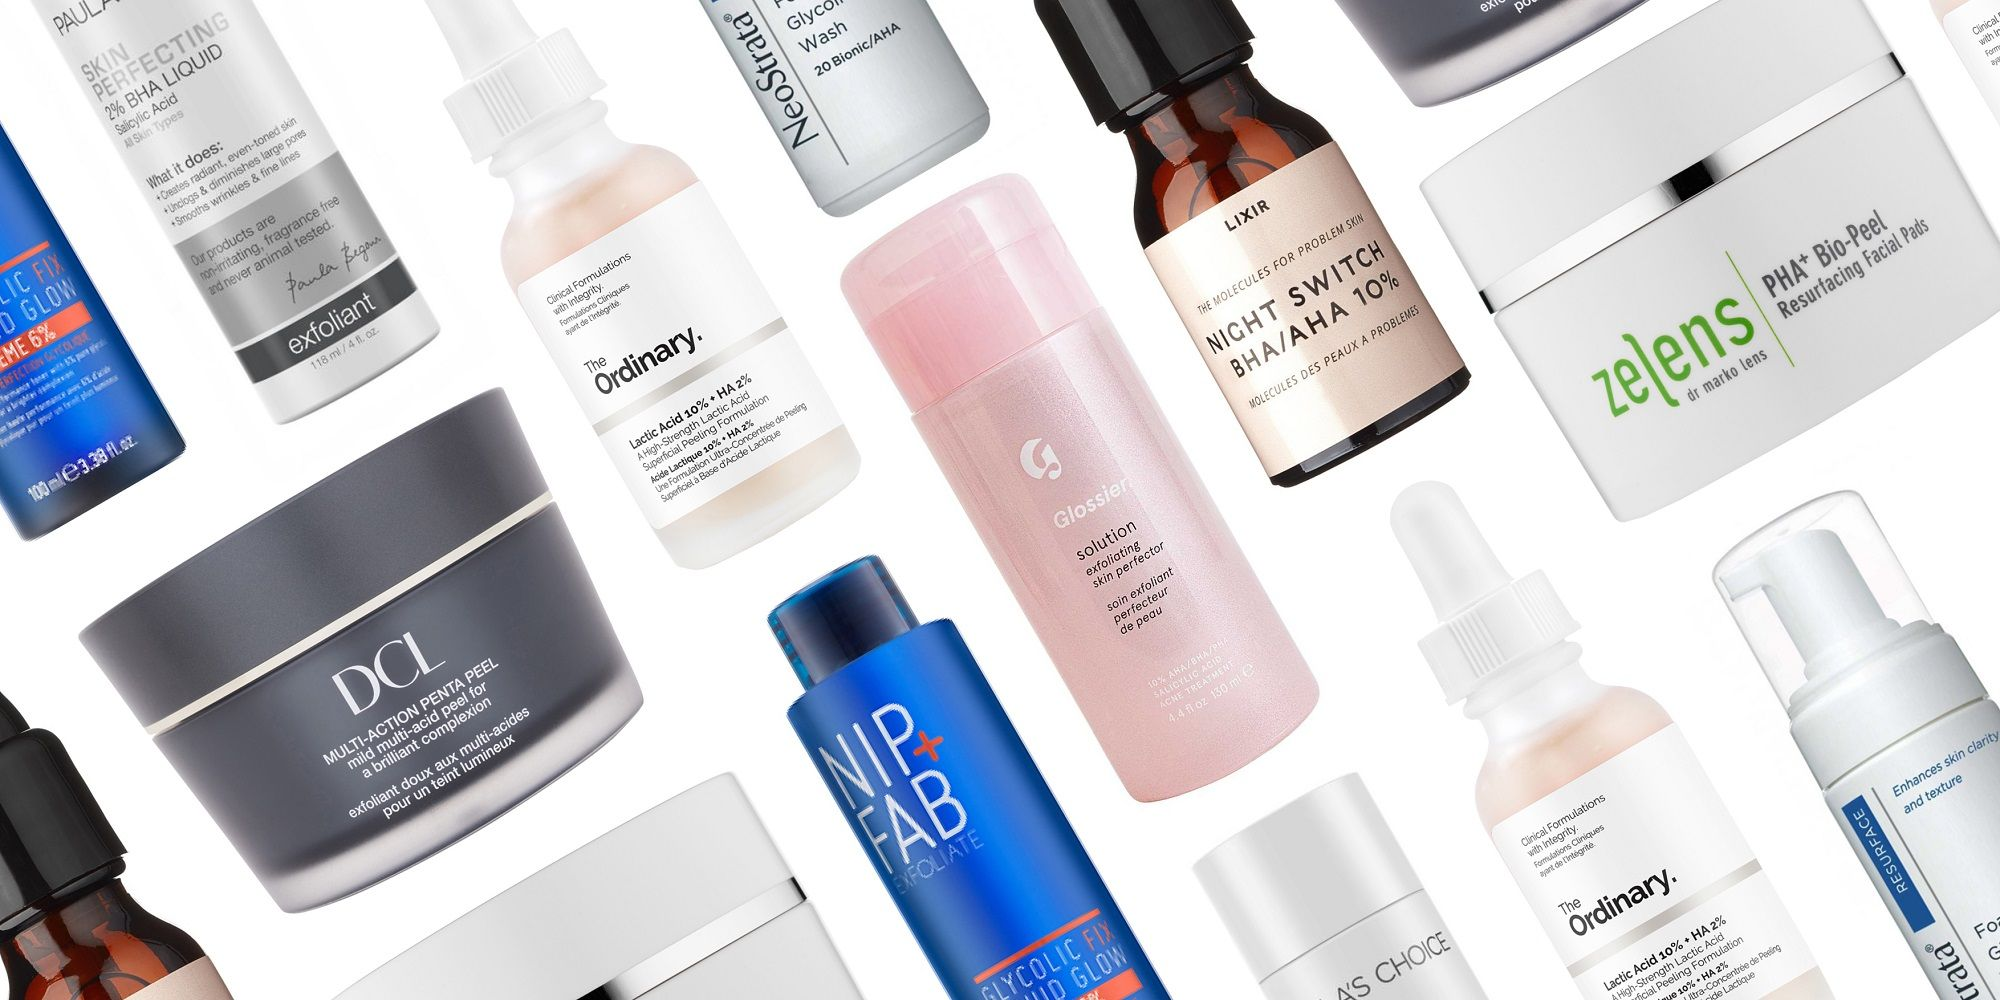 Acids For Your Skin: What Are AHAs, BHAs And PHAs In Skincare?